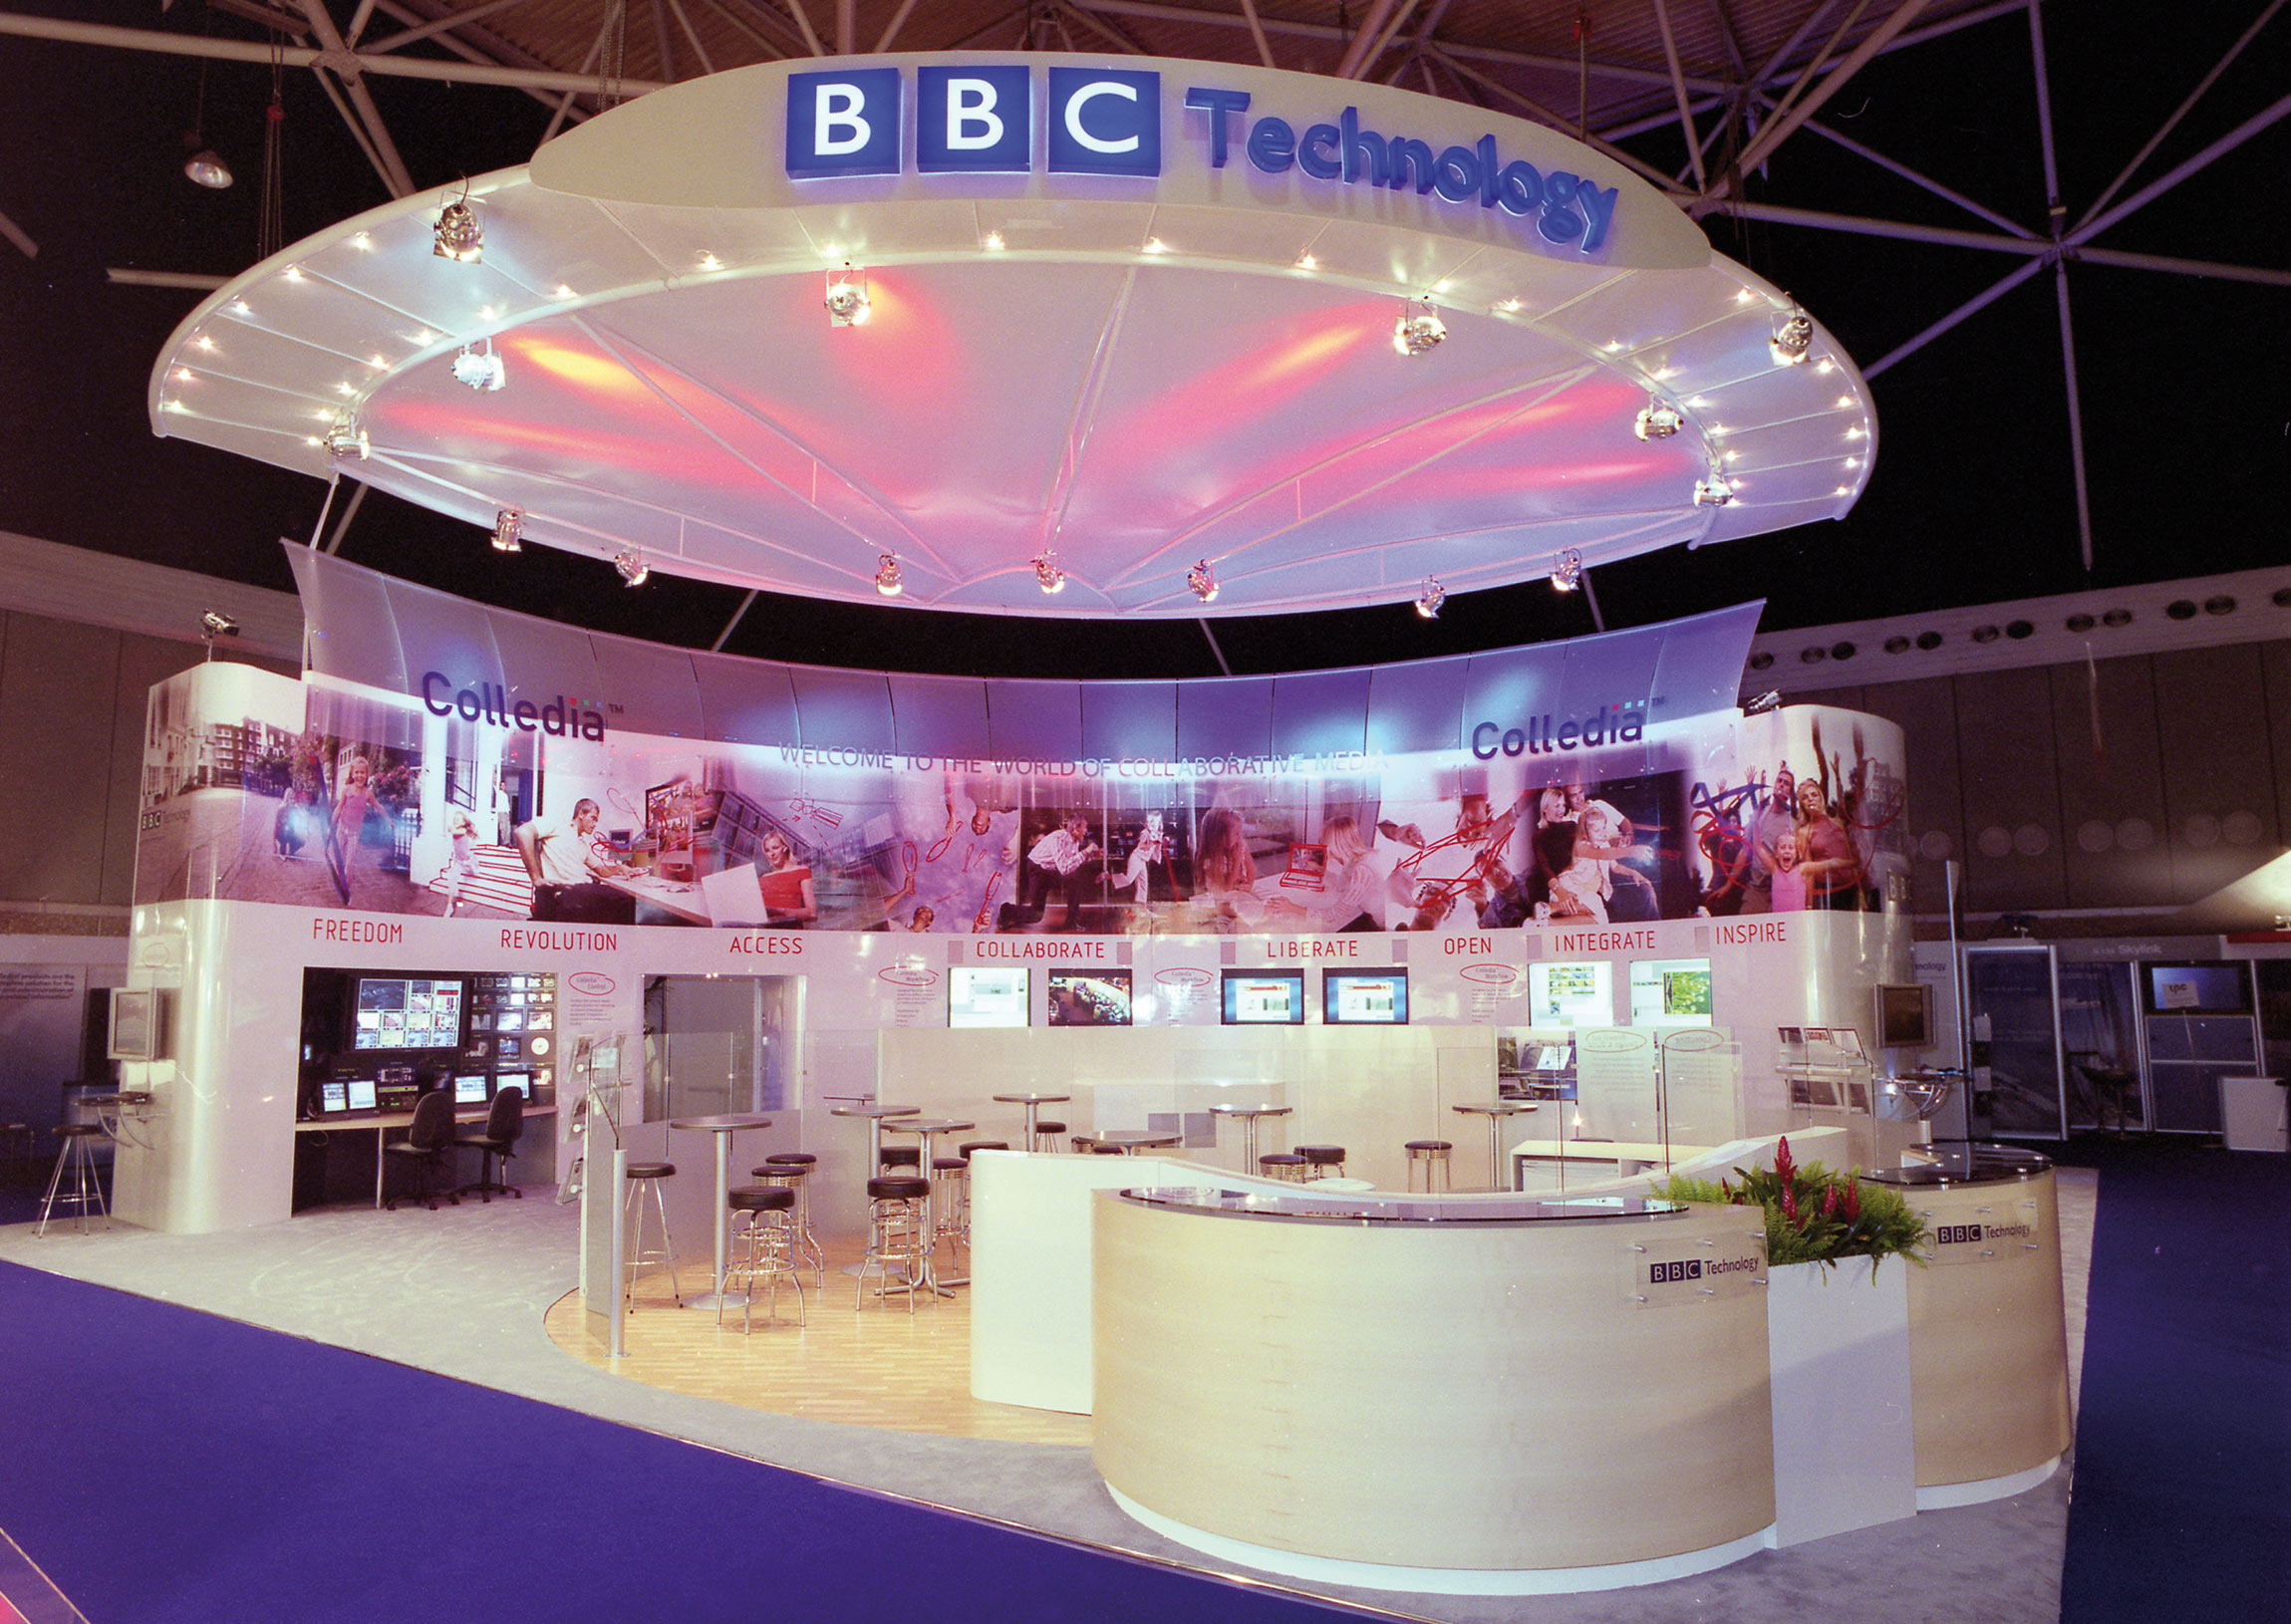 The importance of good exhibition design